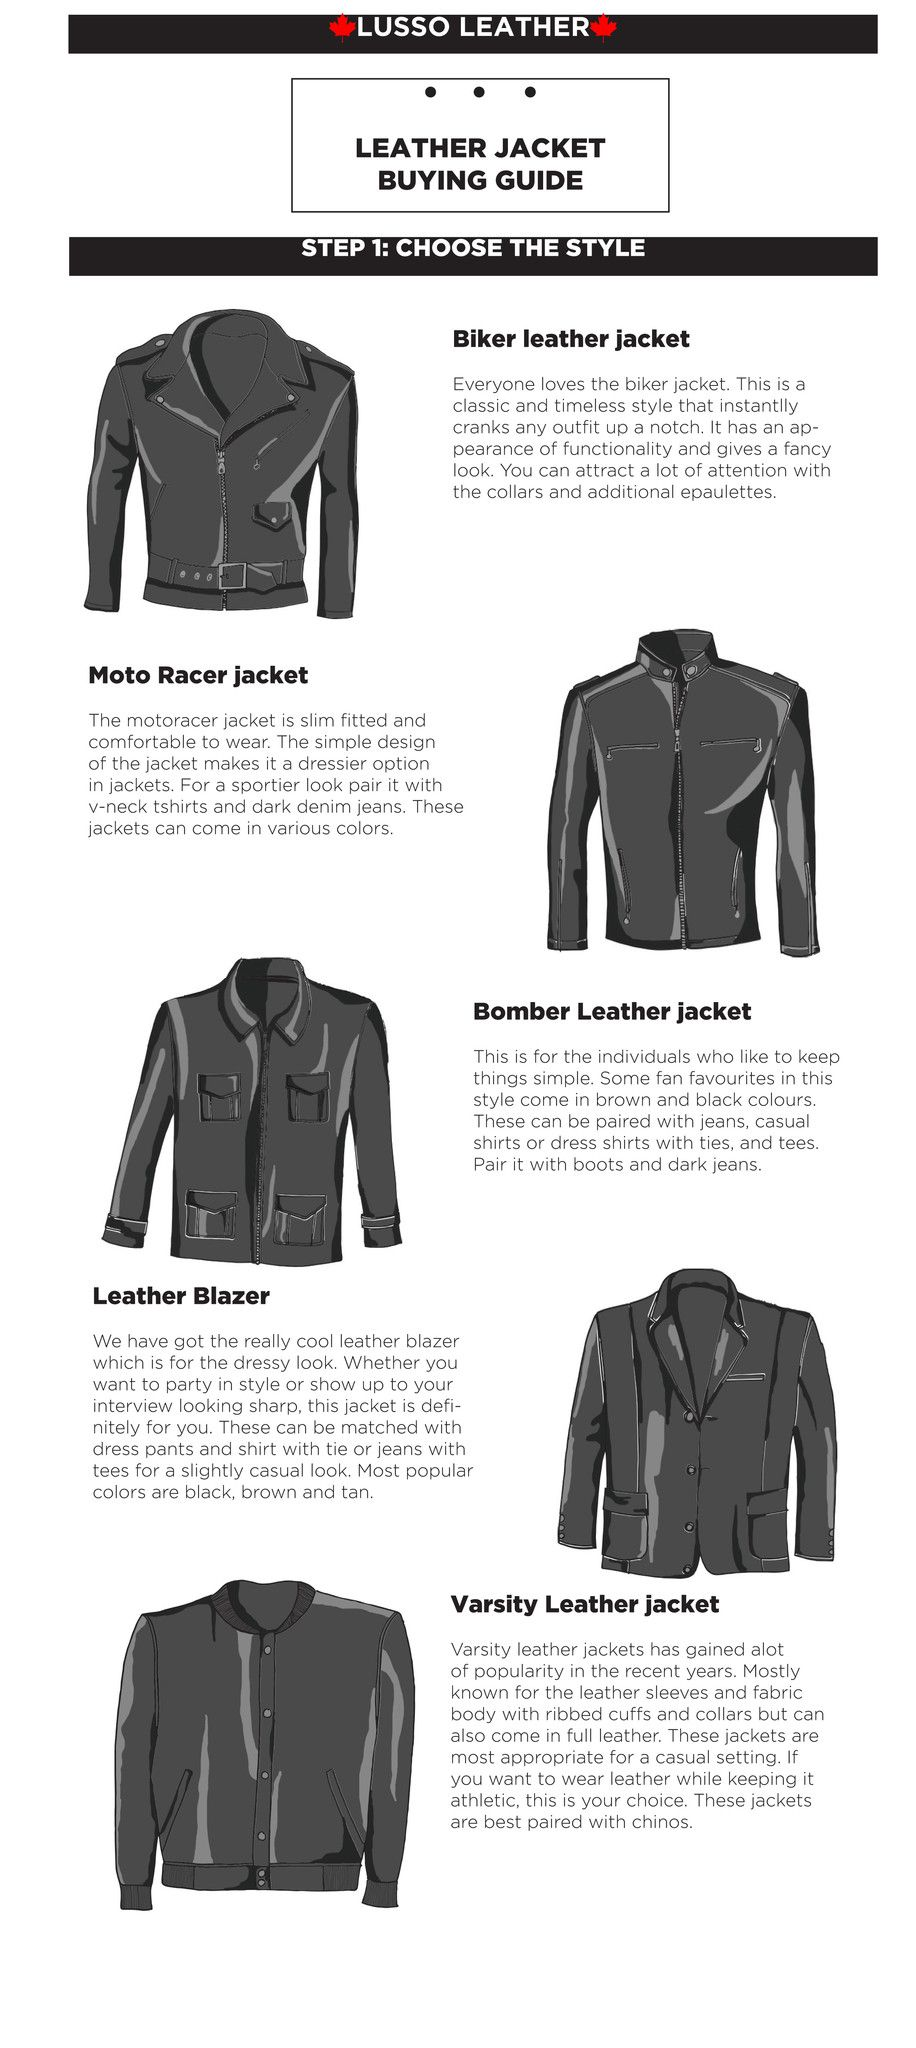 e14cf9985864 Leather jacket Buying guide from Lusso Leather. Buy leather jackets on SALE  for $146 USD #leather #leatherjacket #infographic